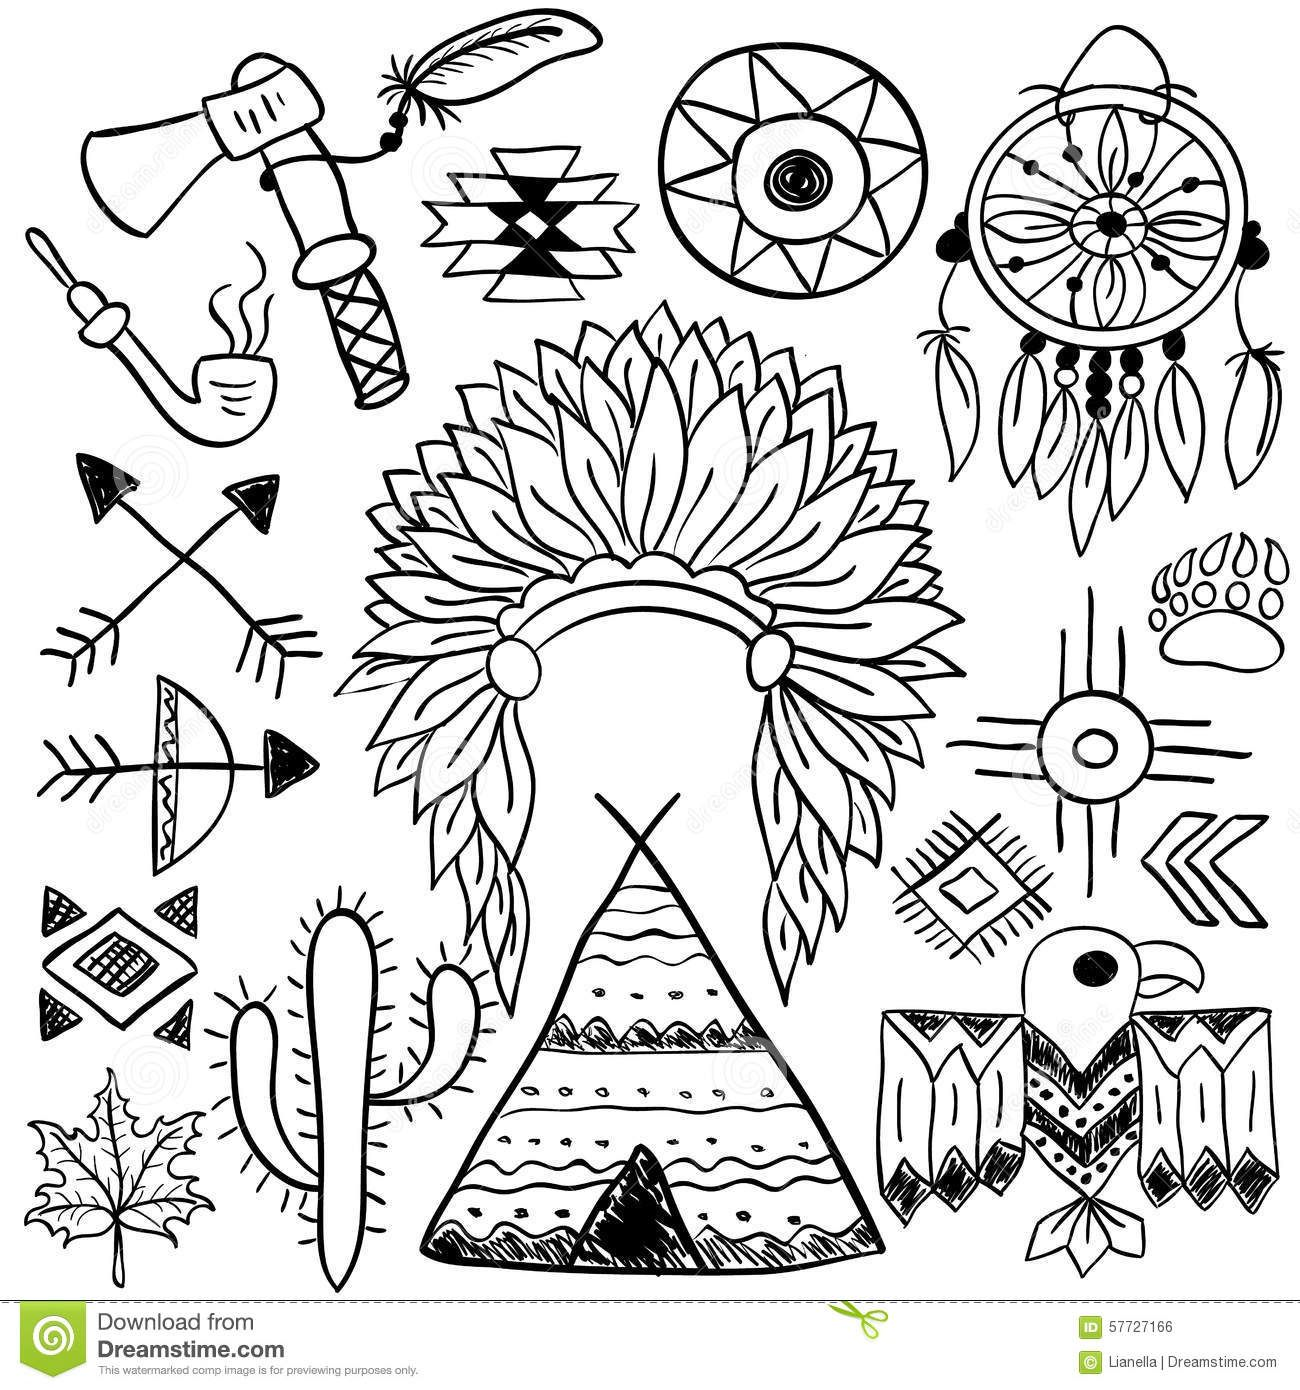 american indian symbols patterns free | Vector art of Native ...